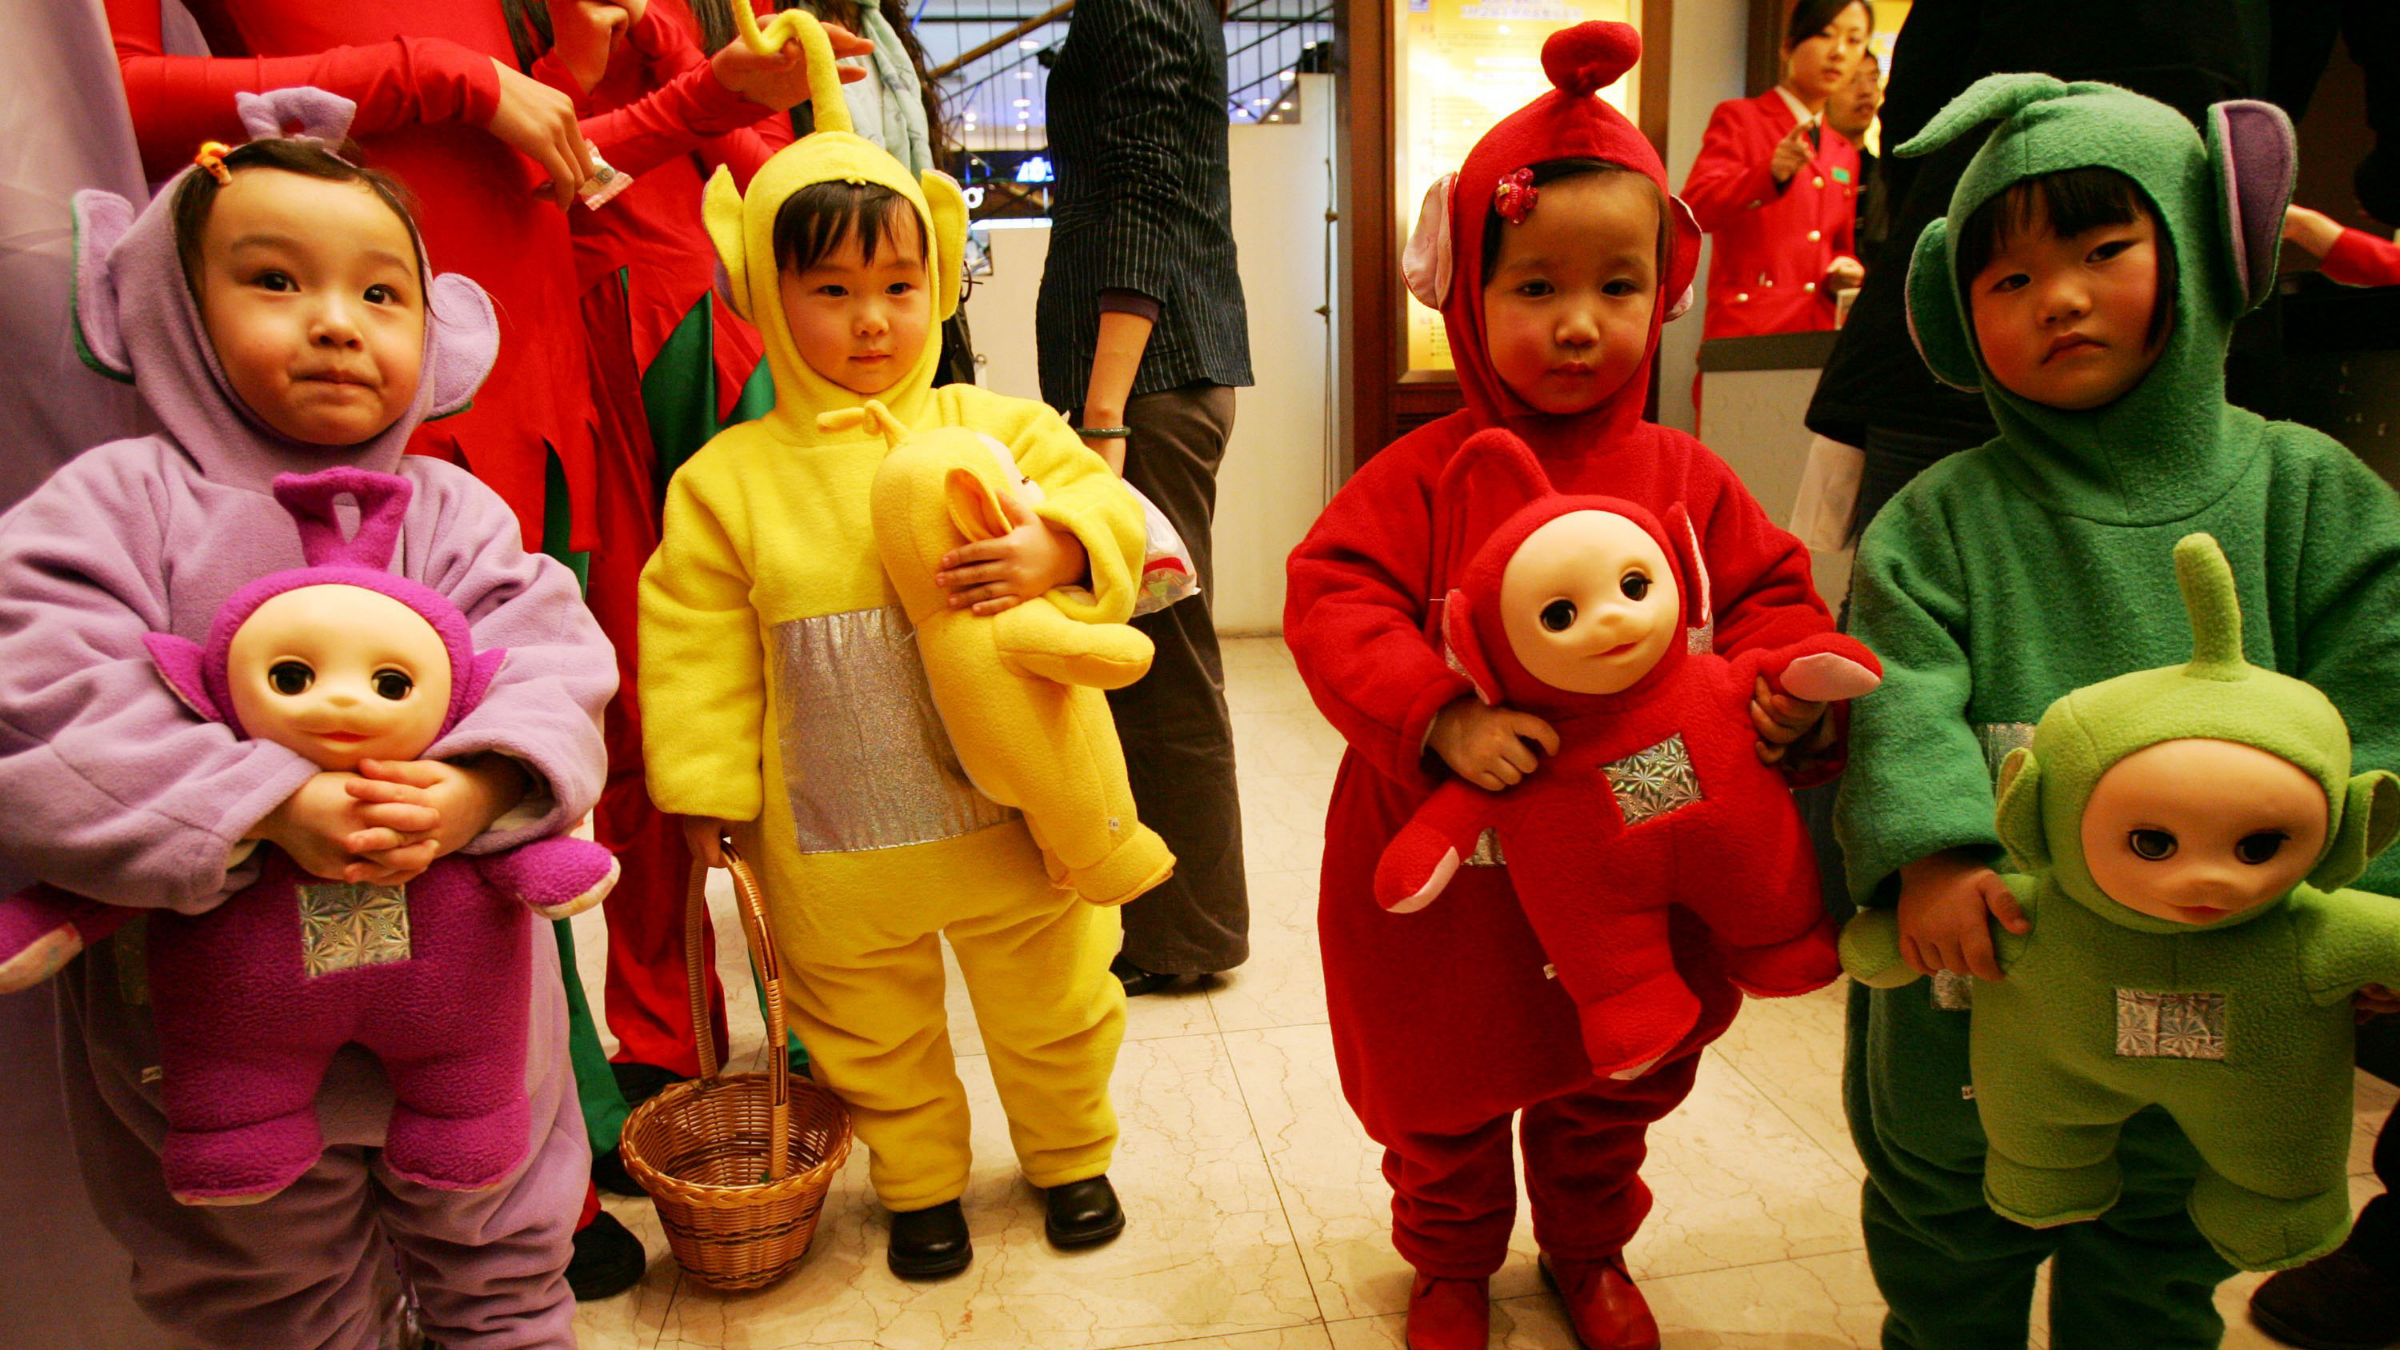 Young children dressed as Teletubbies babies.